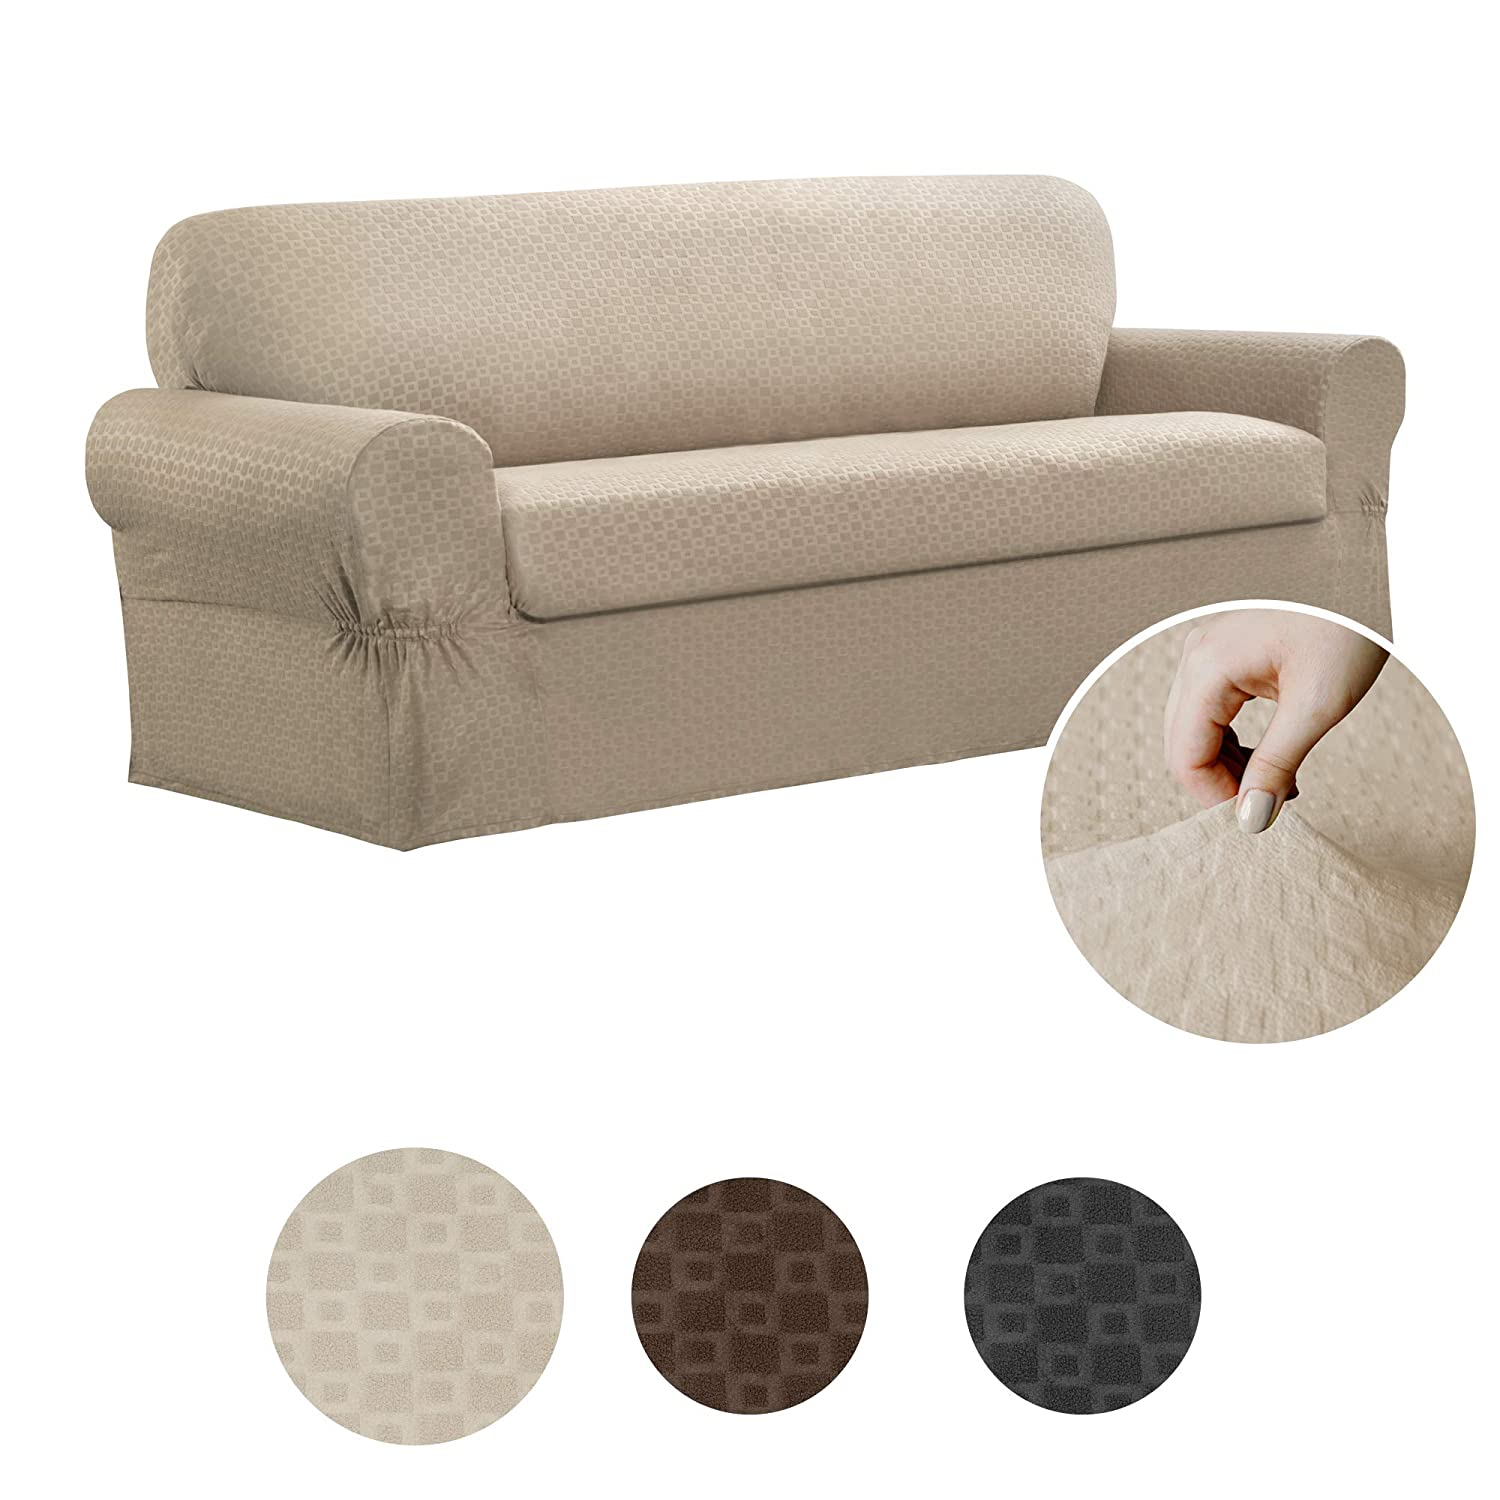 Maytex Conrad 2-Piece Sofa Furniture Cover / Slipcover, Sand